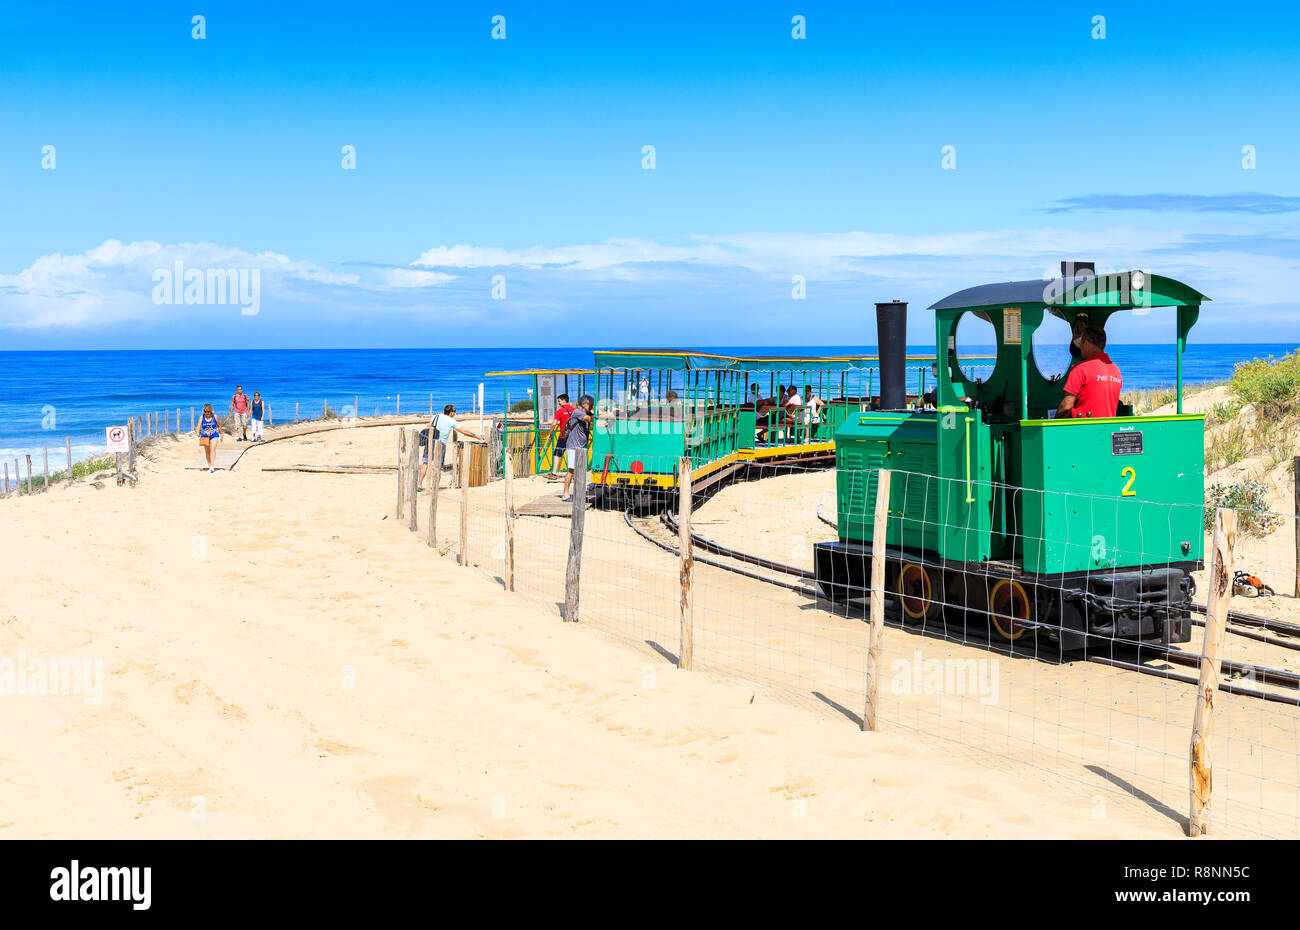 Petit Train, Cap Ferret, France Photo Stock